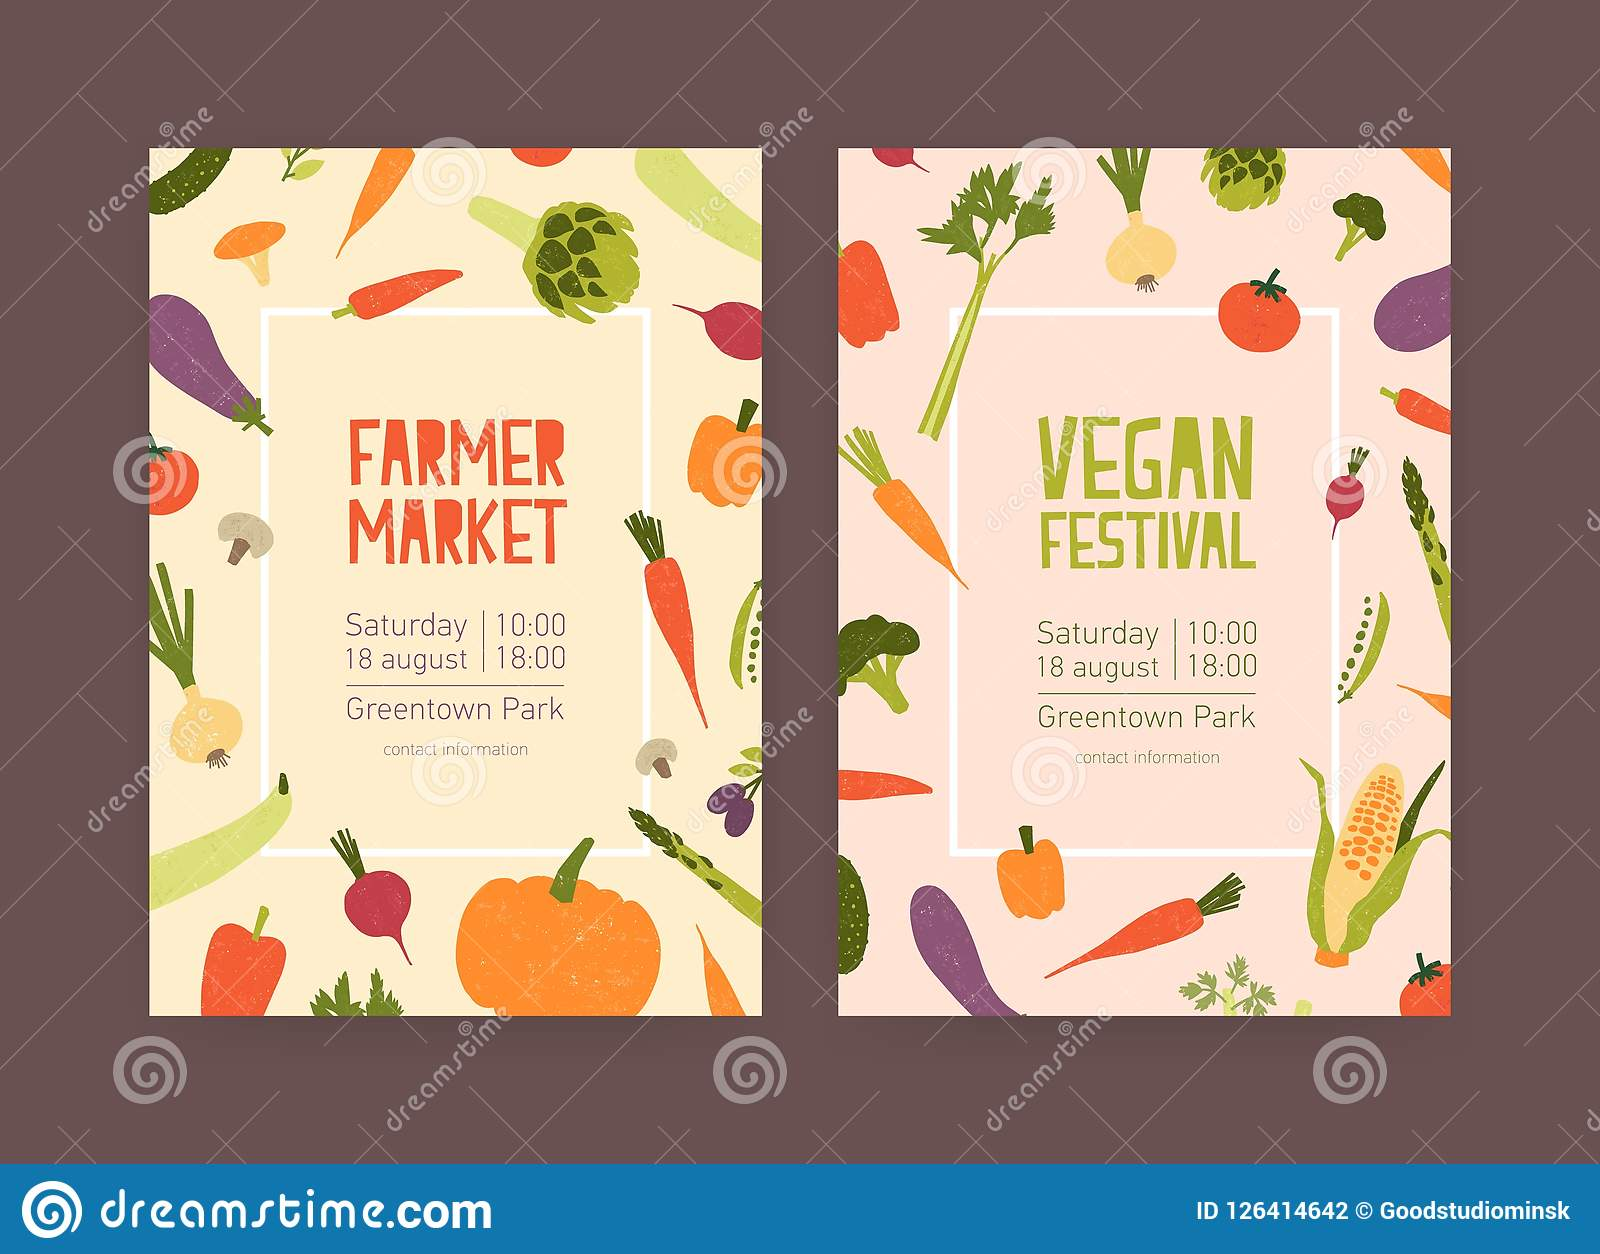 Set Of Flyer Or Invitation Templates For Farmer Market And Vegan